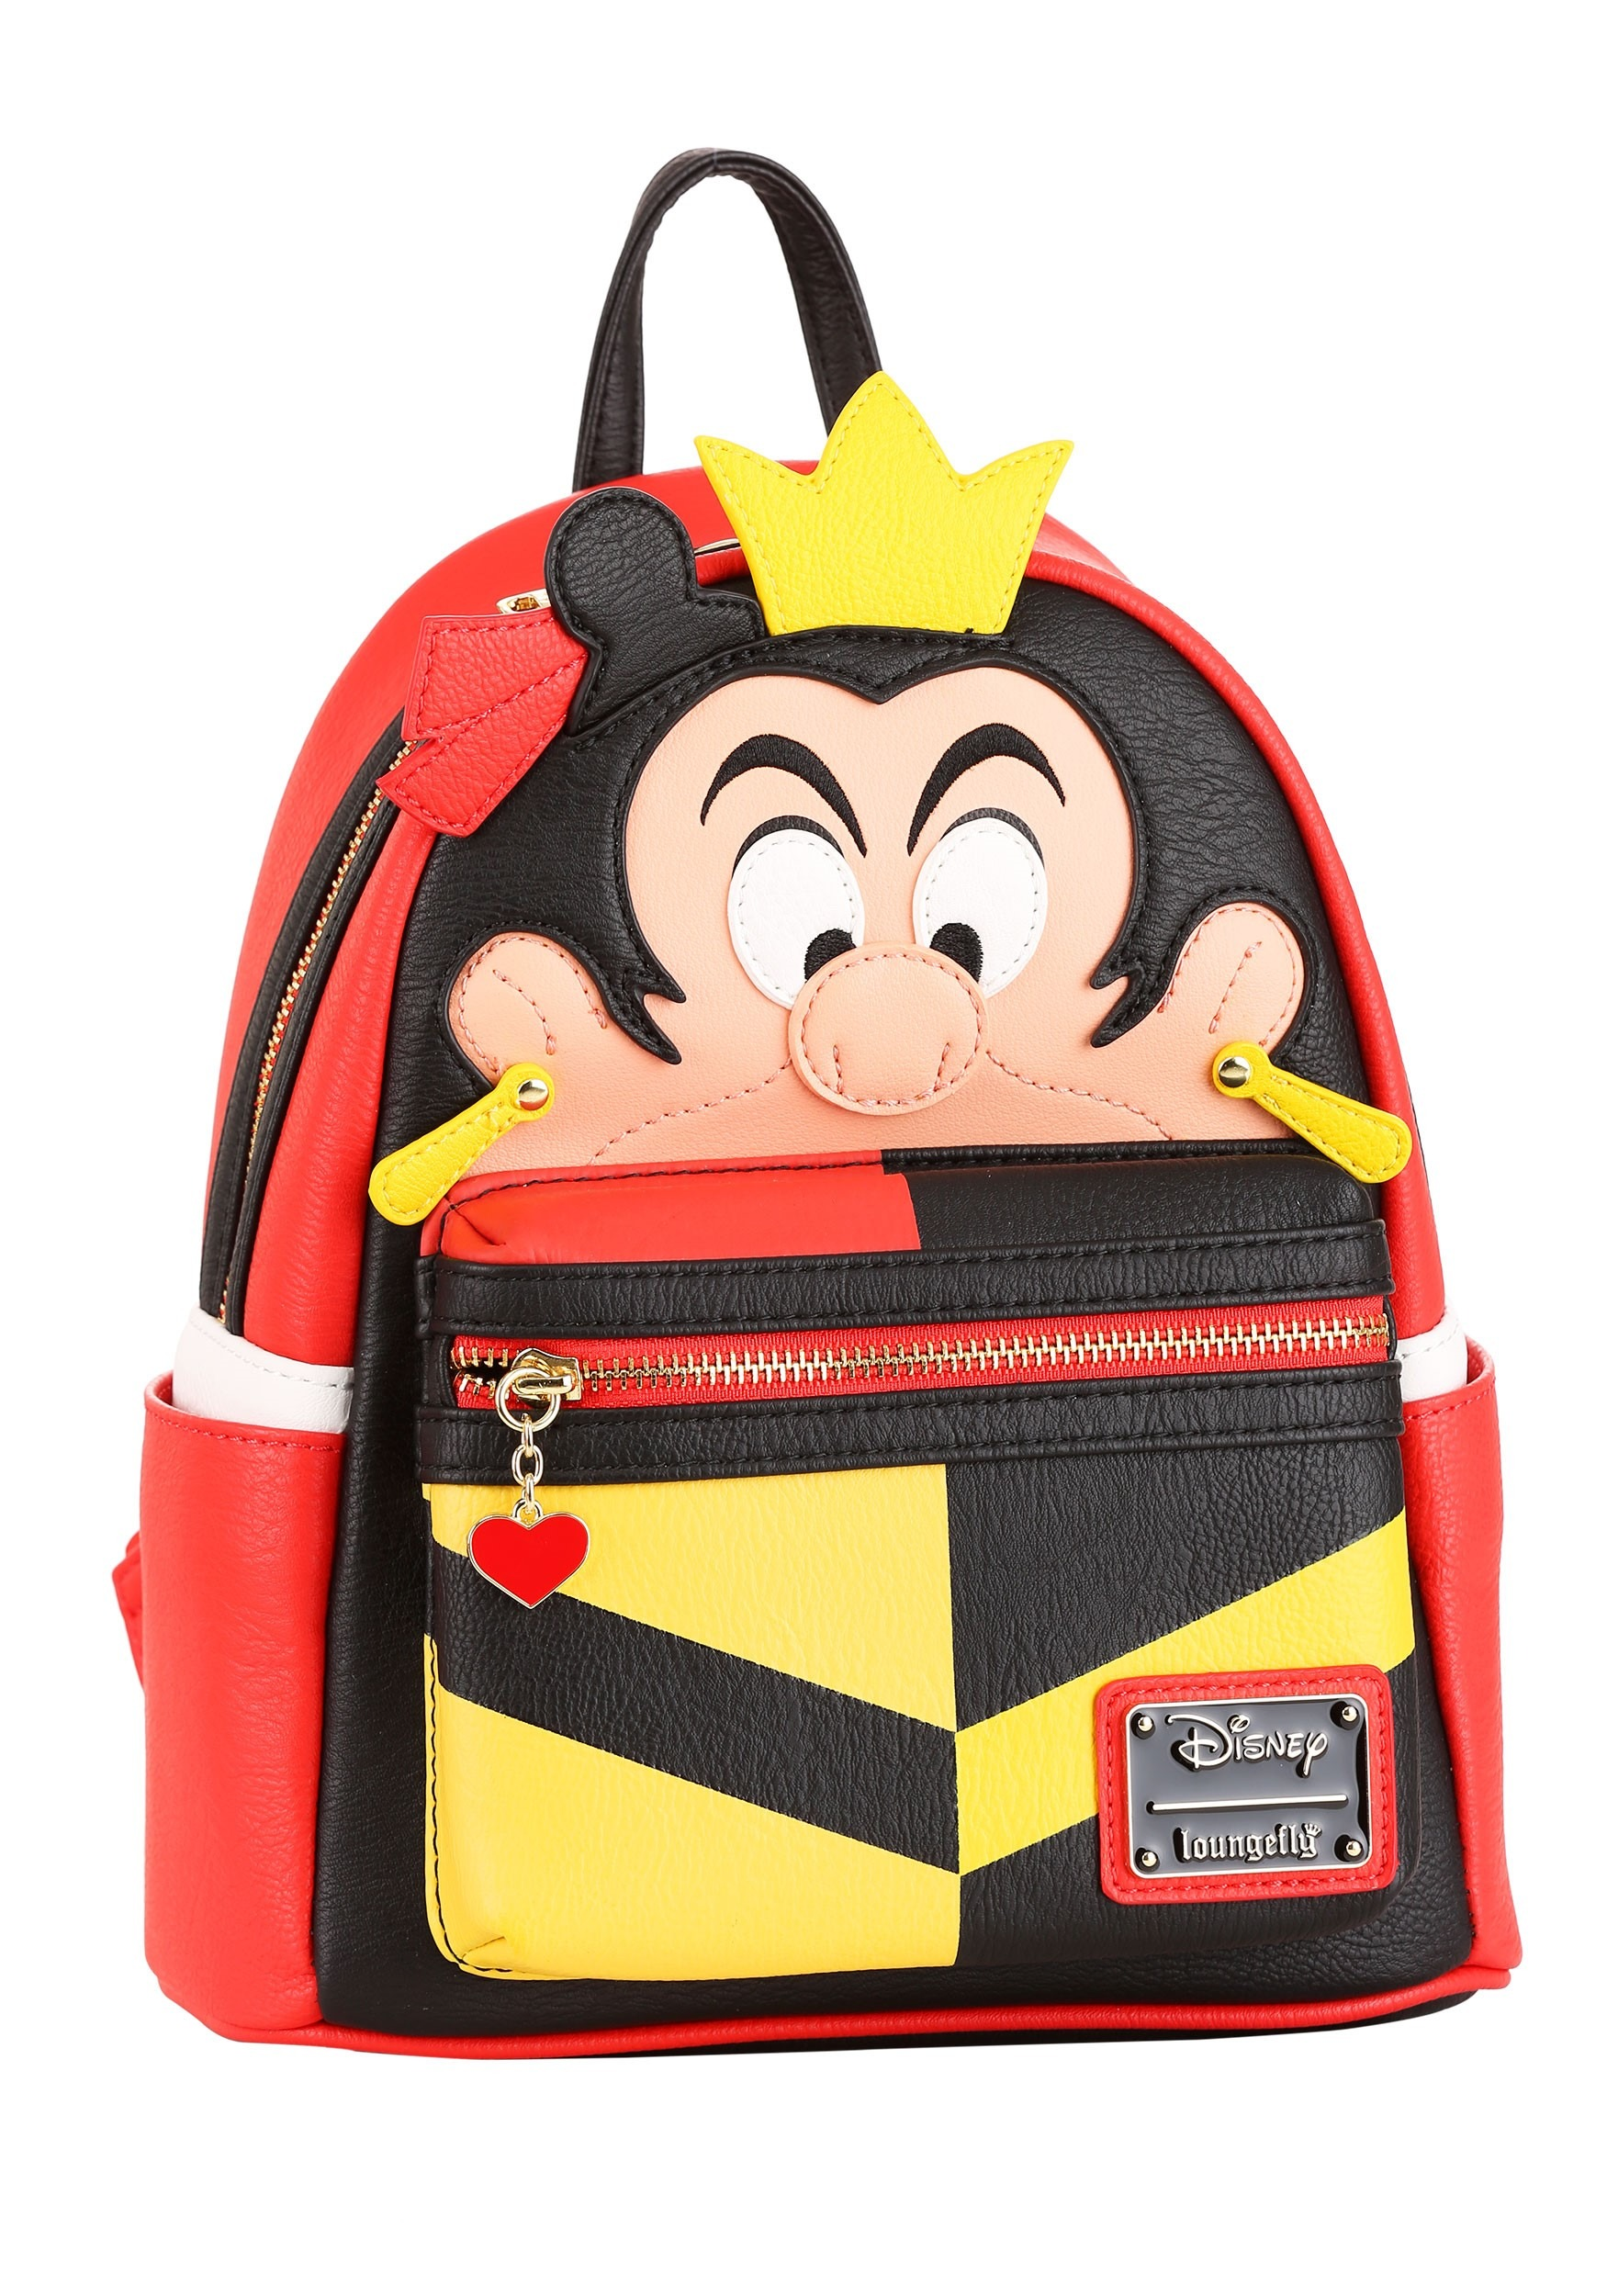 Loungefly Disney Queen of Hearts Mini Faux Leather Backpack